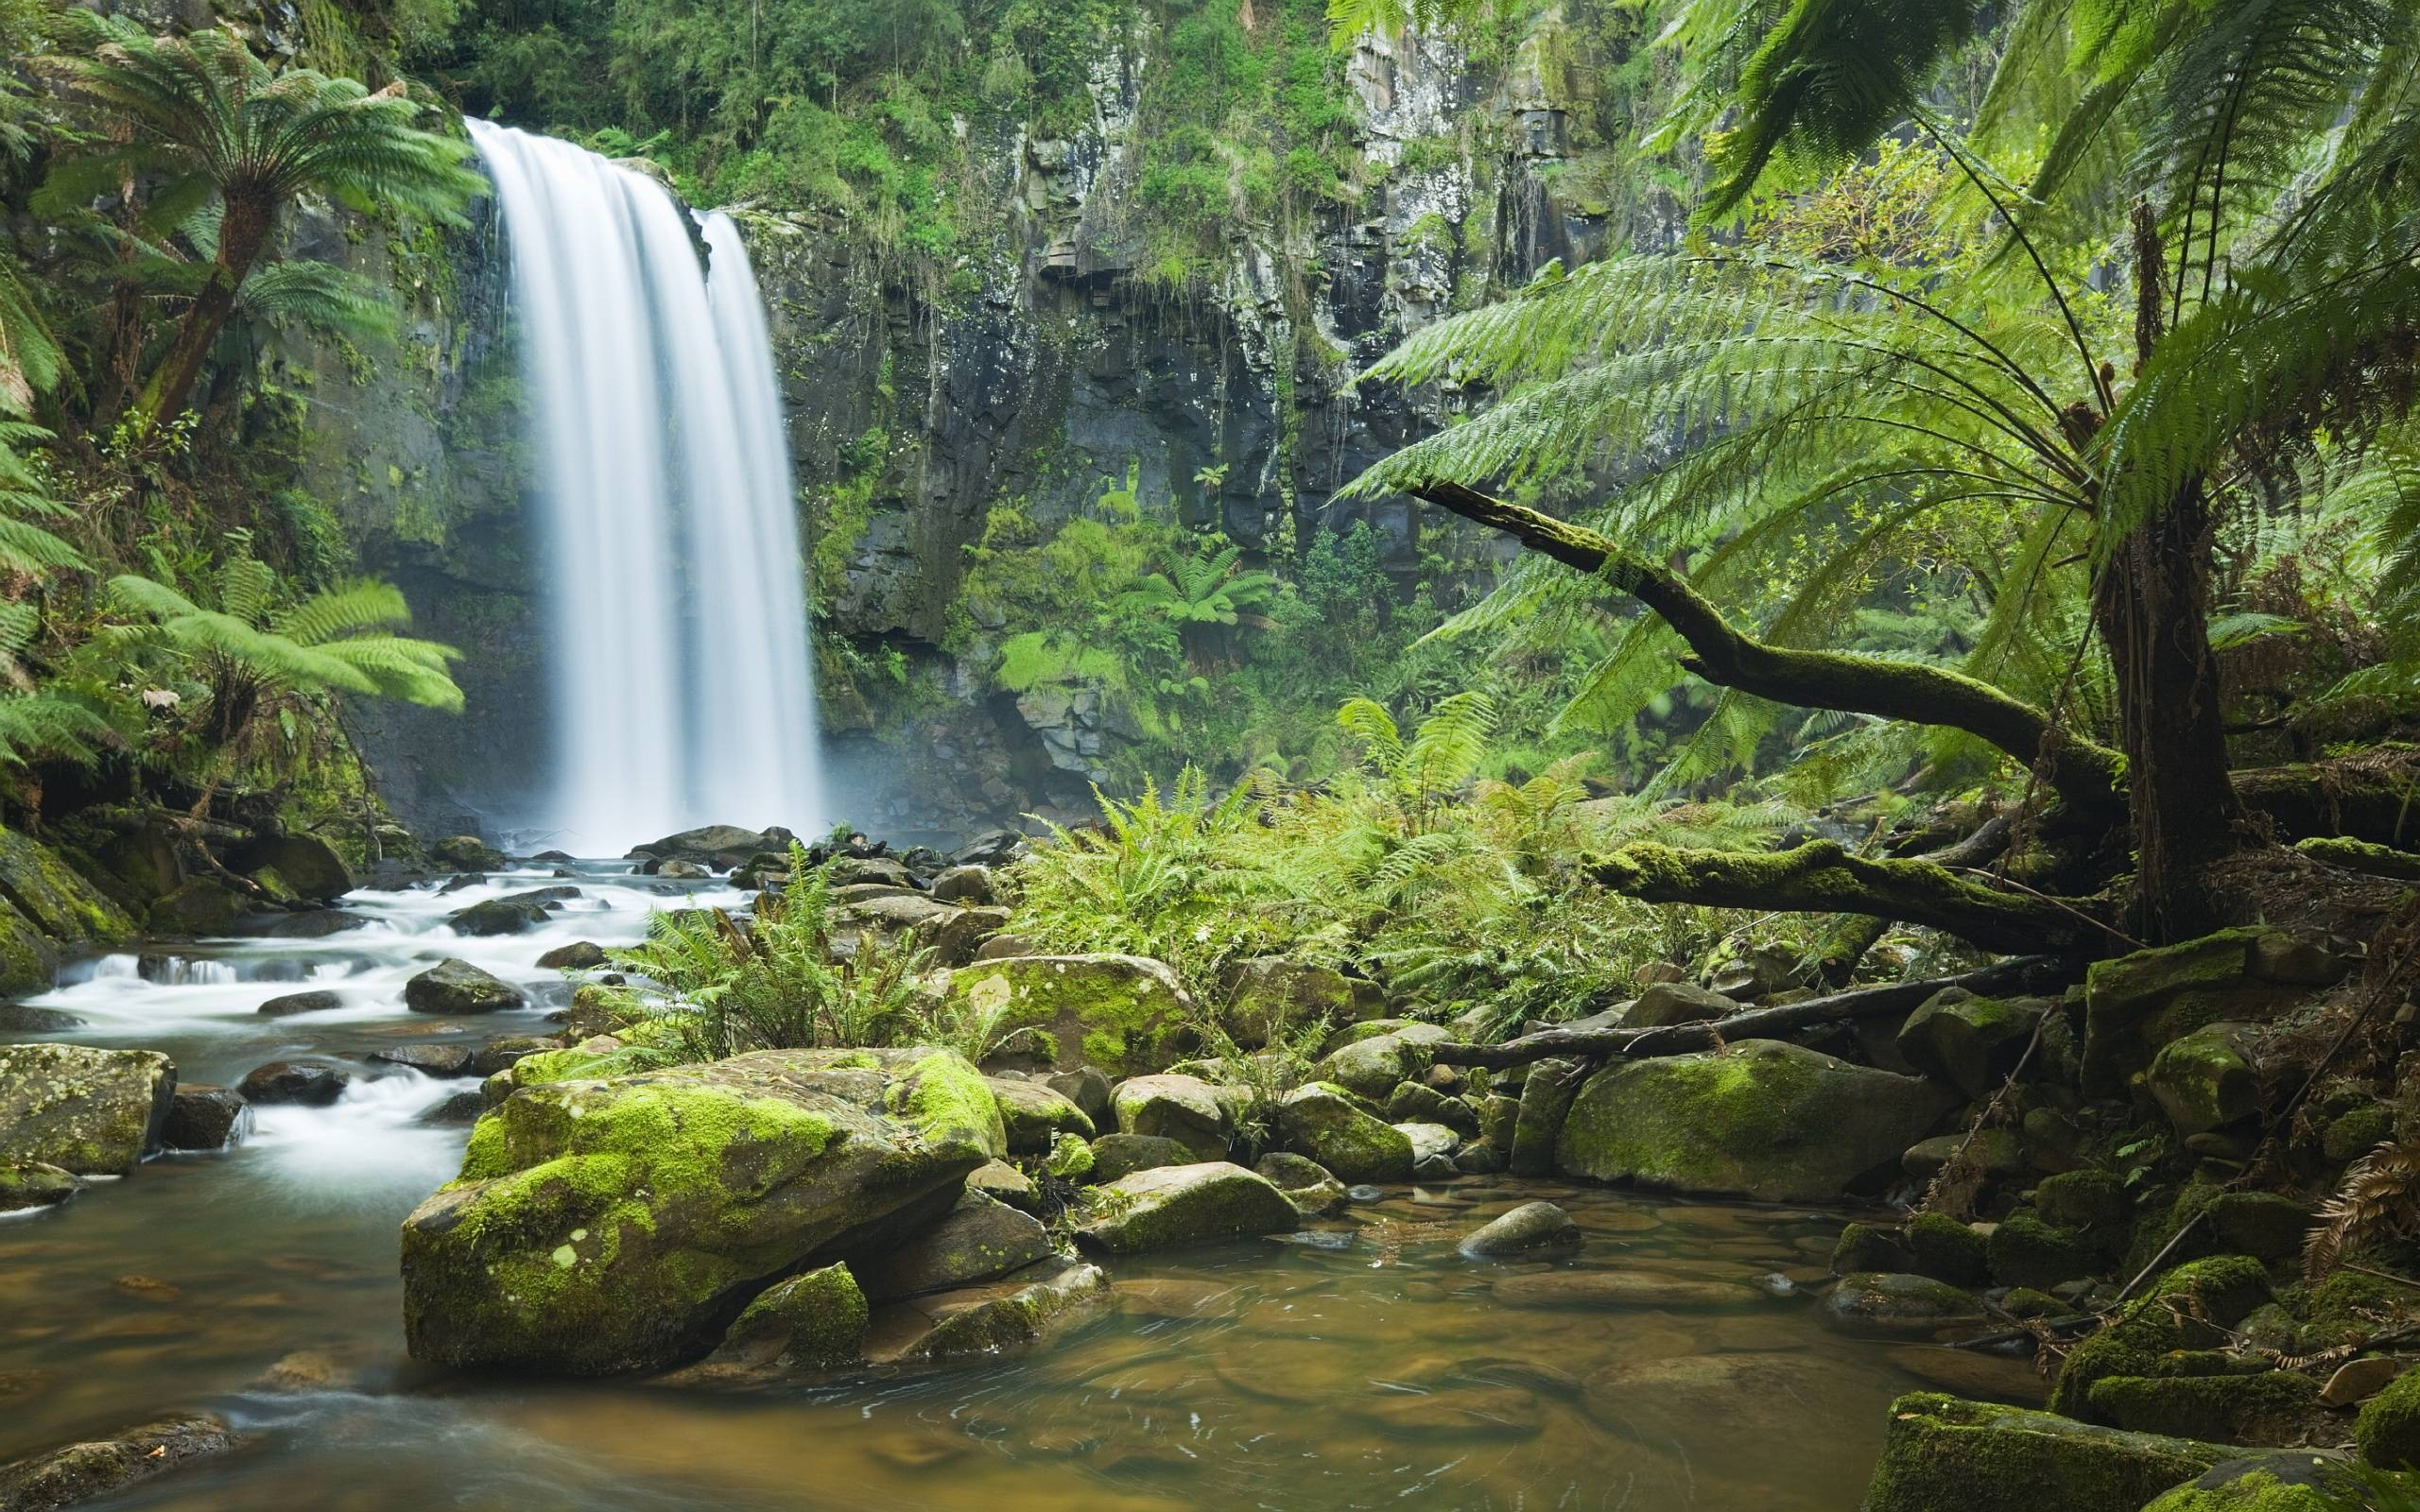 Tropical Rainforest Stock Photos, Pictures & Royalty-Free ... |Tropical Rainforest Photography